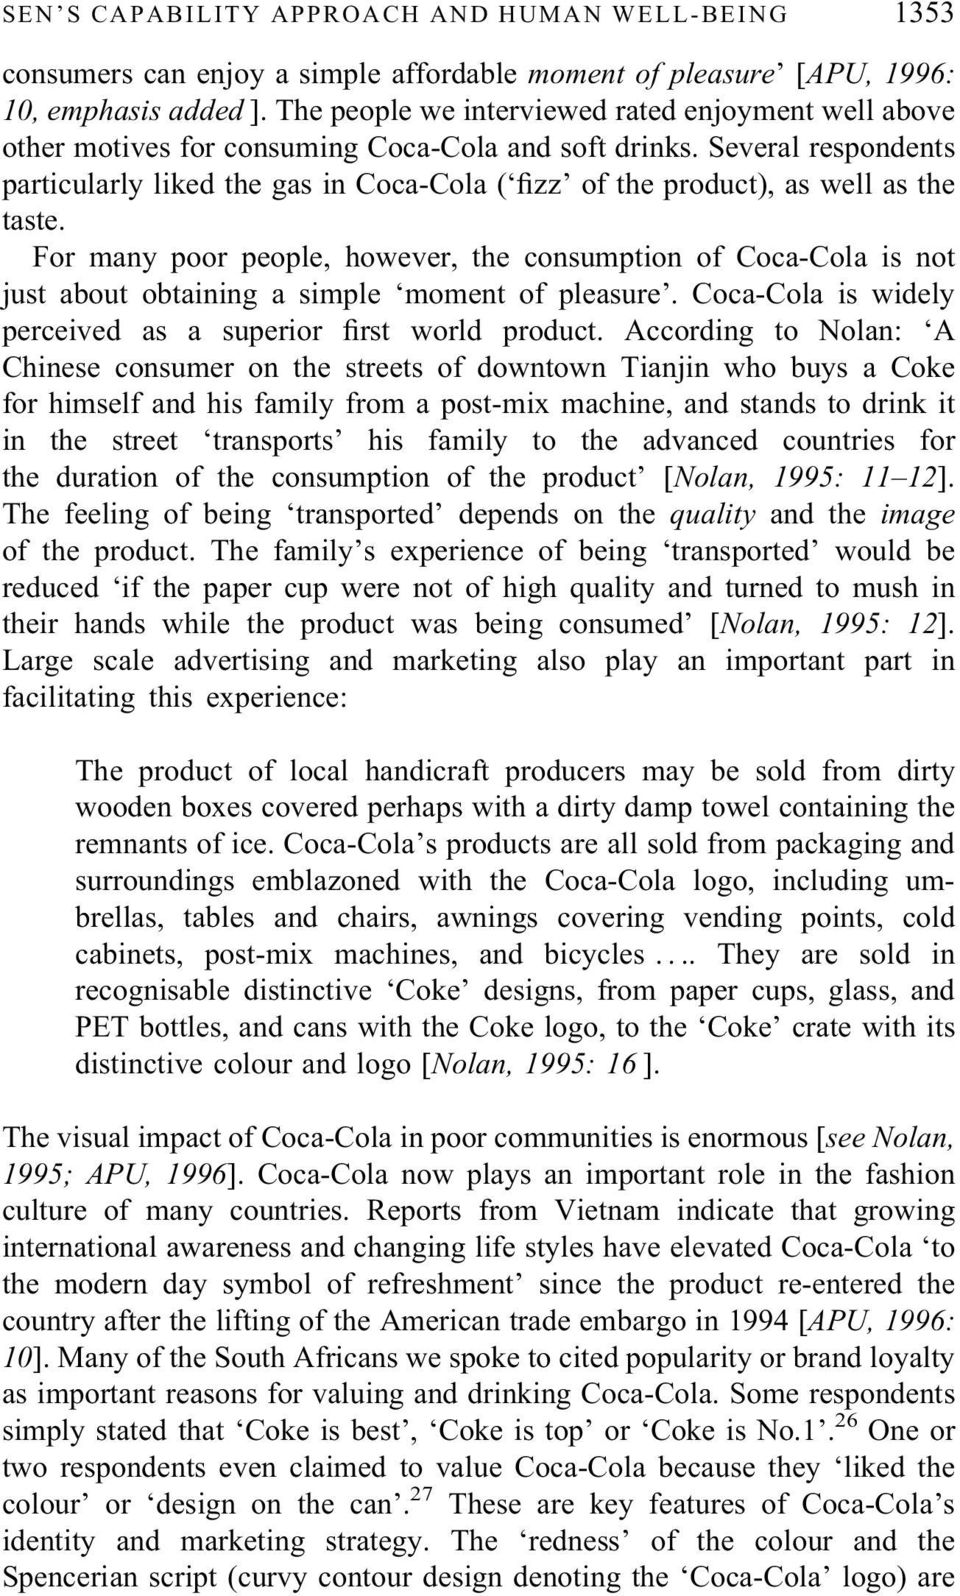 Several respondents particularly liked the gas in Coca-Cola ( fizz of the product), as well as the taste.